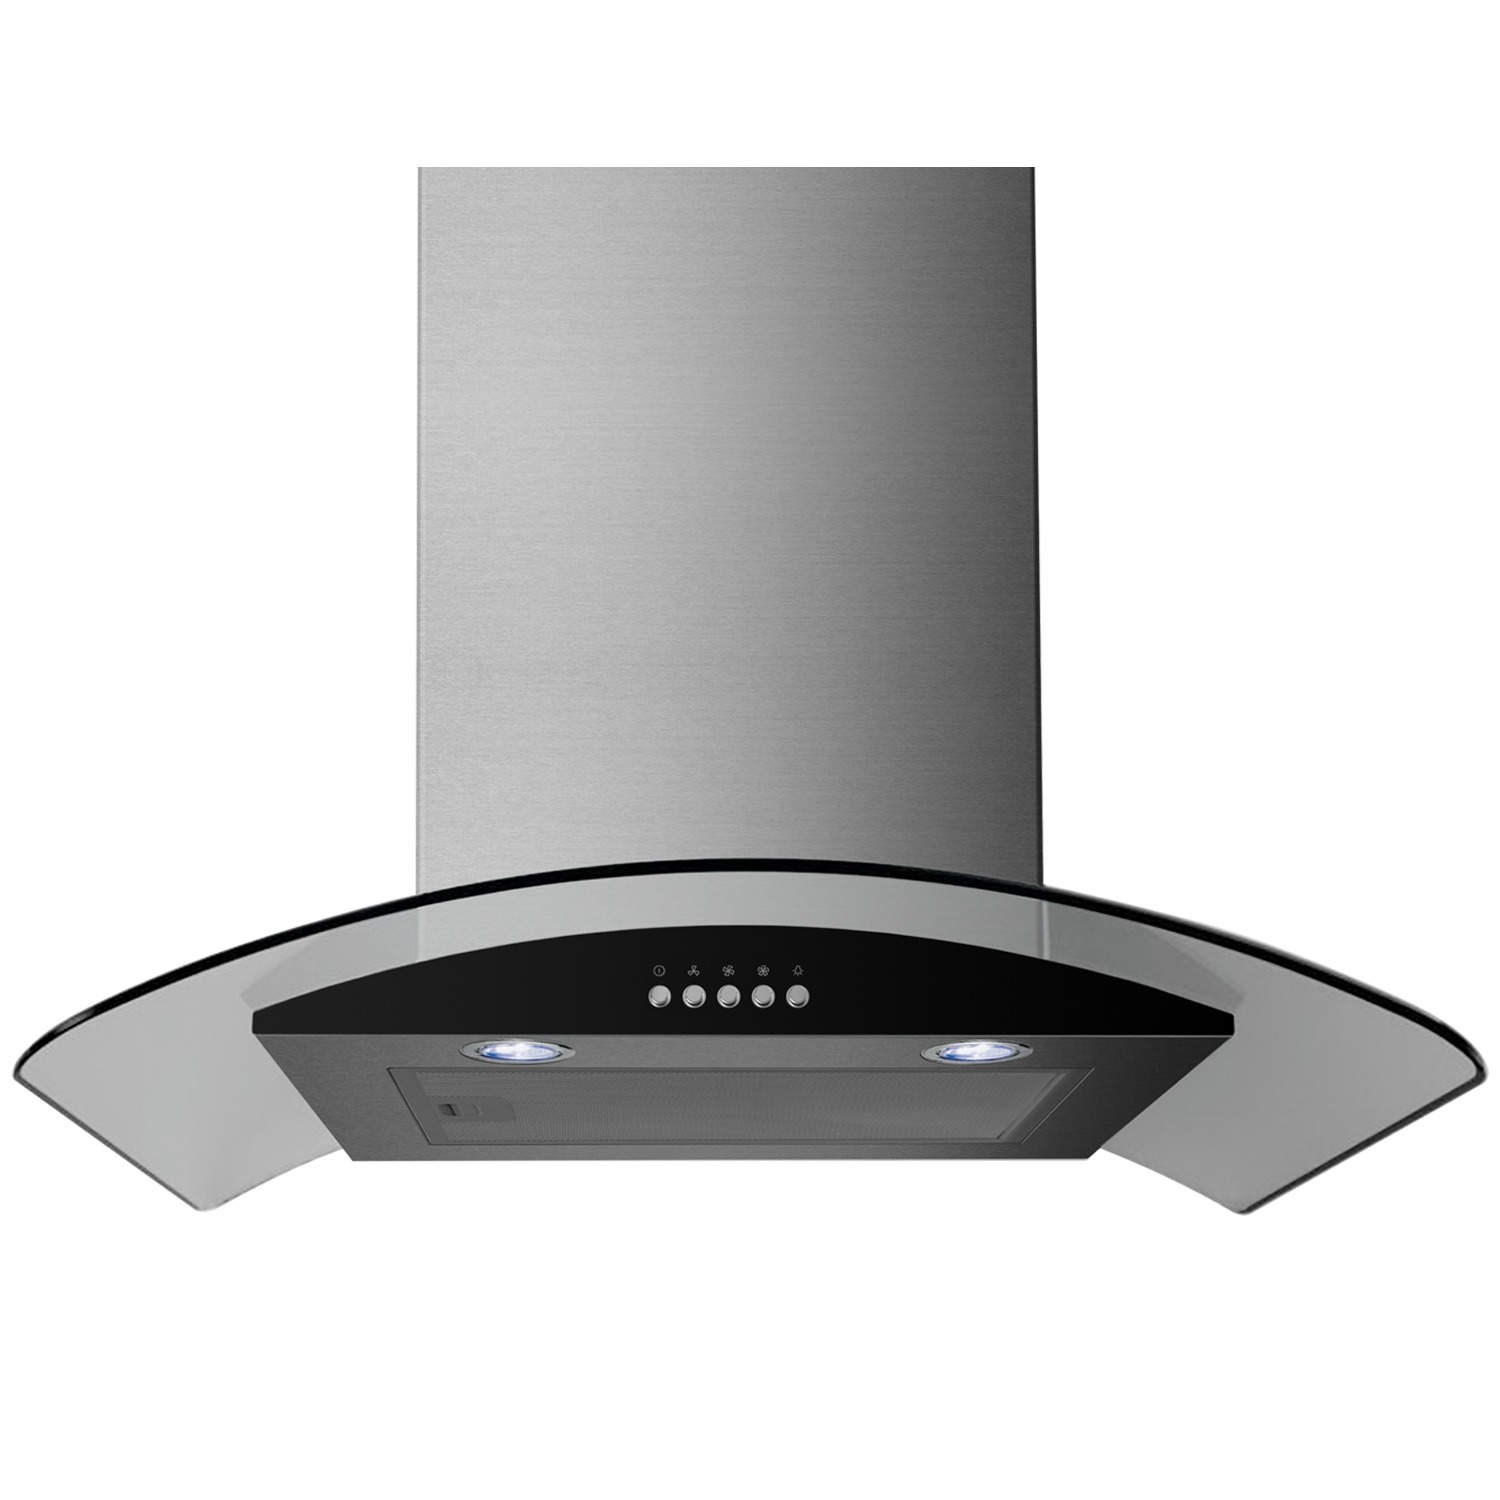 Curved Glass Stainless Steel Chimney Cooker Hood Extractor Fan eBay #545B77